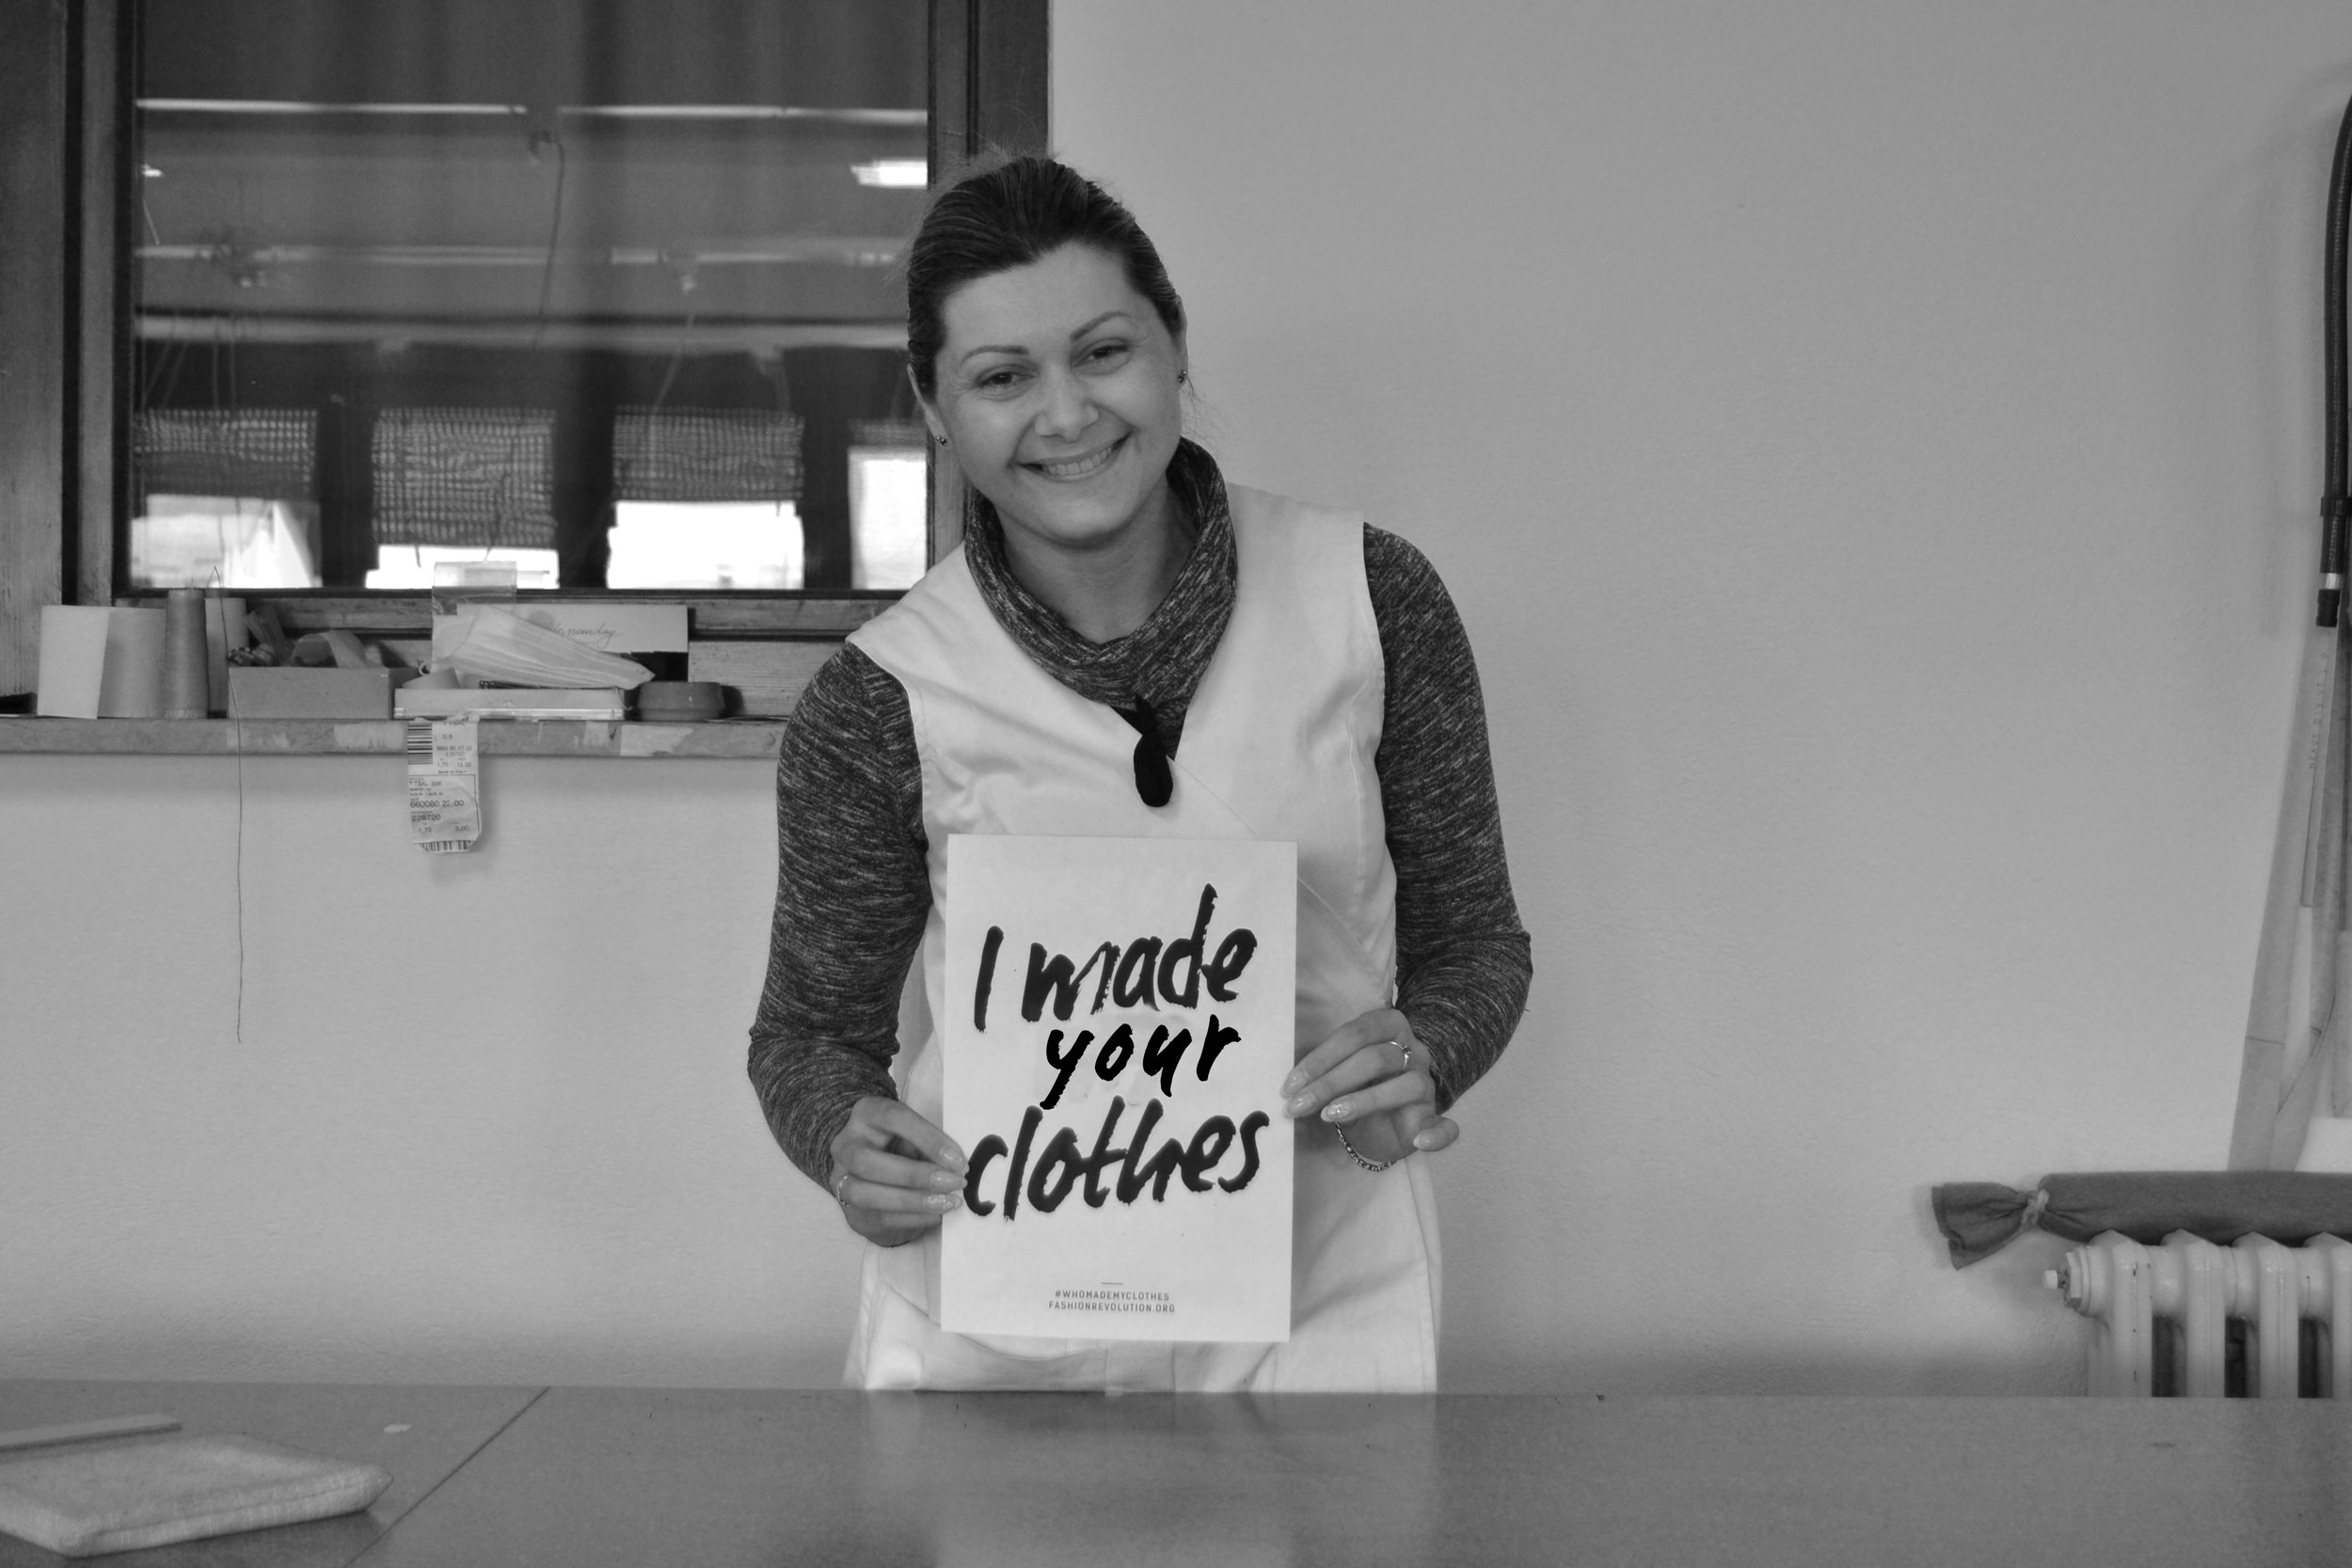 Imadeyourclothes_05_BW.jpg